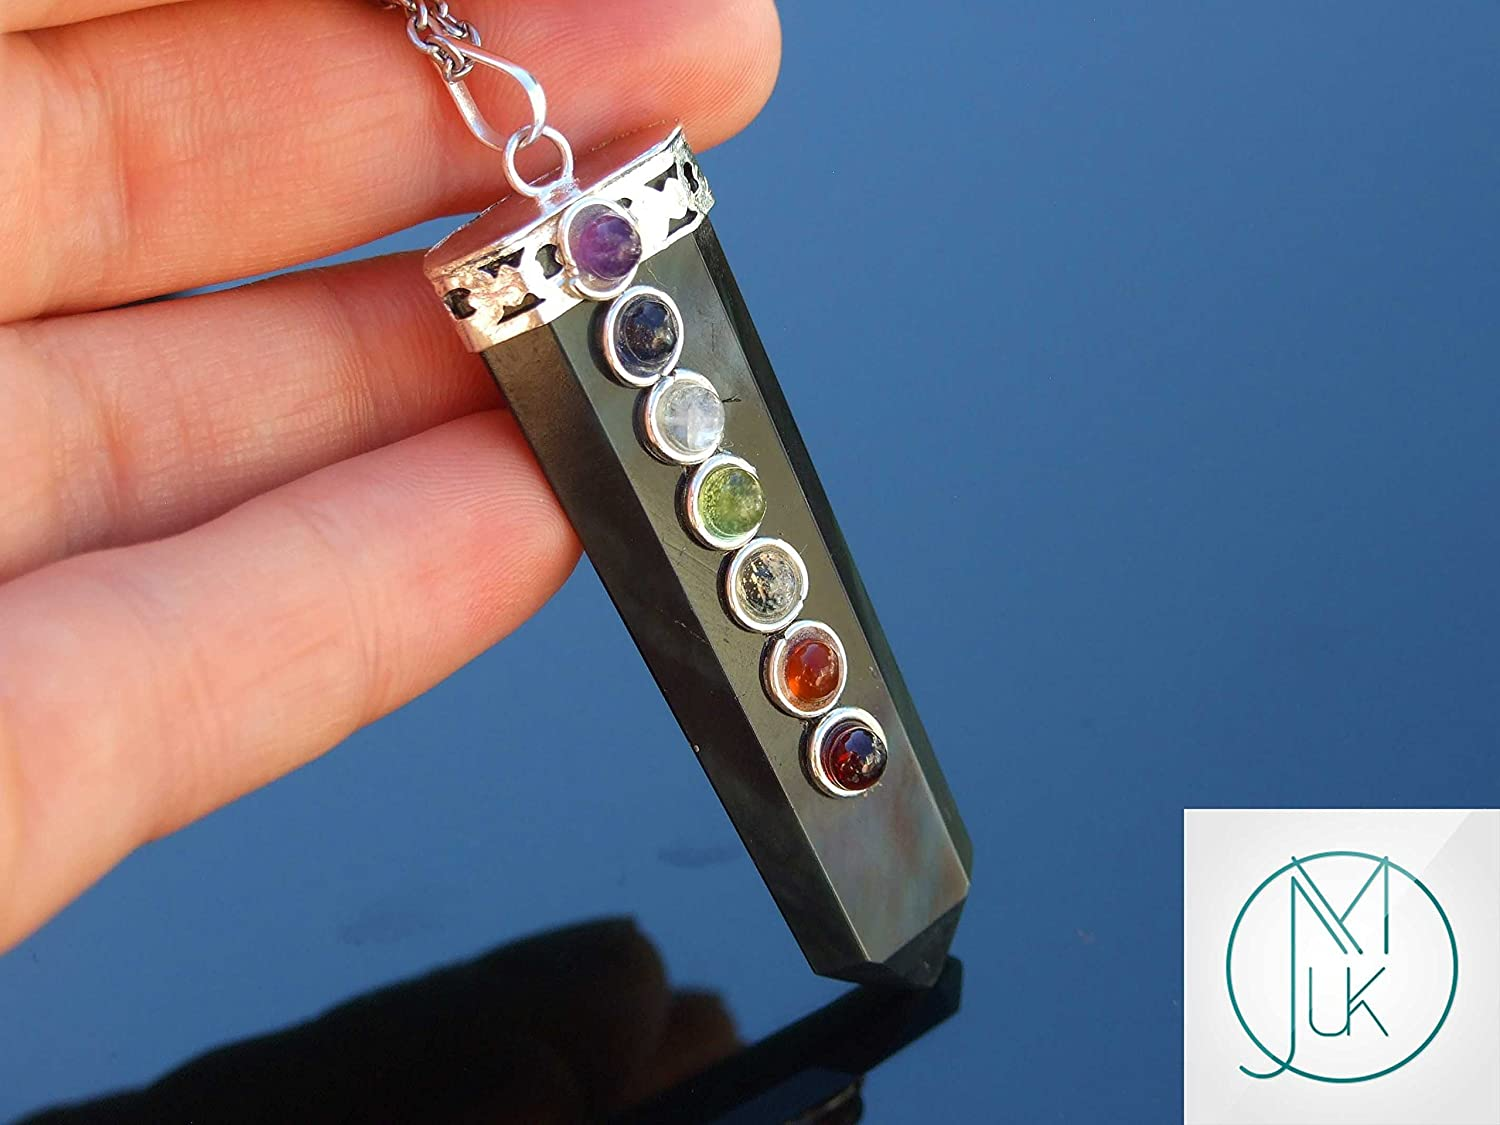 Rainbow Obsidian 7 Chakra Flat Natural Gemstone Pendant Necklace 50cm Healing Stone With Pouch FREE UK SHIPPING